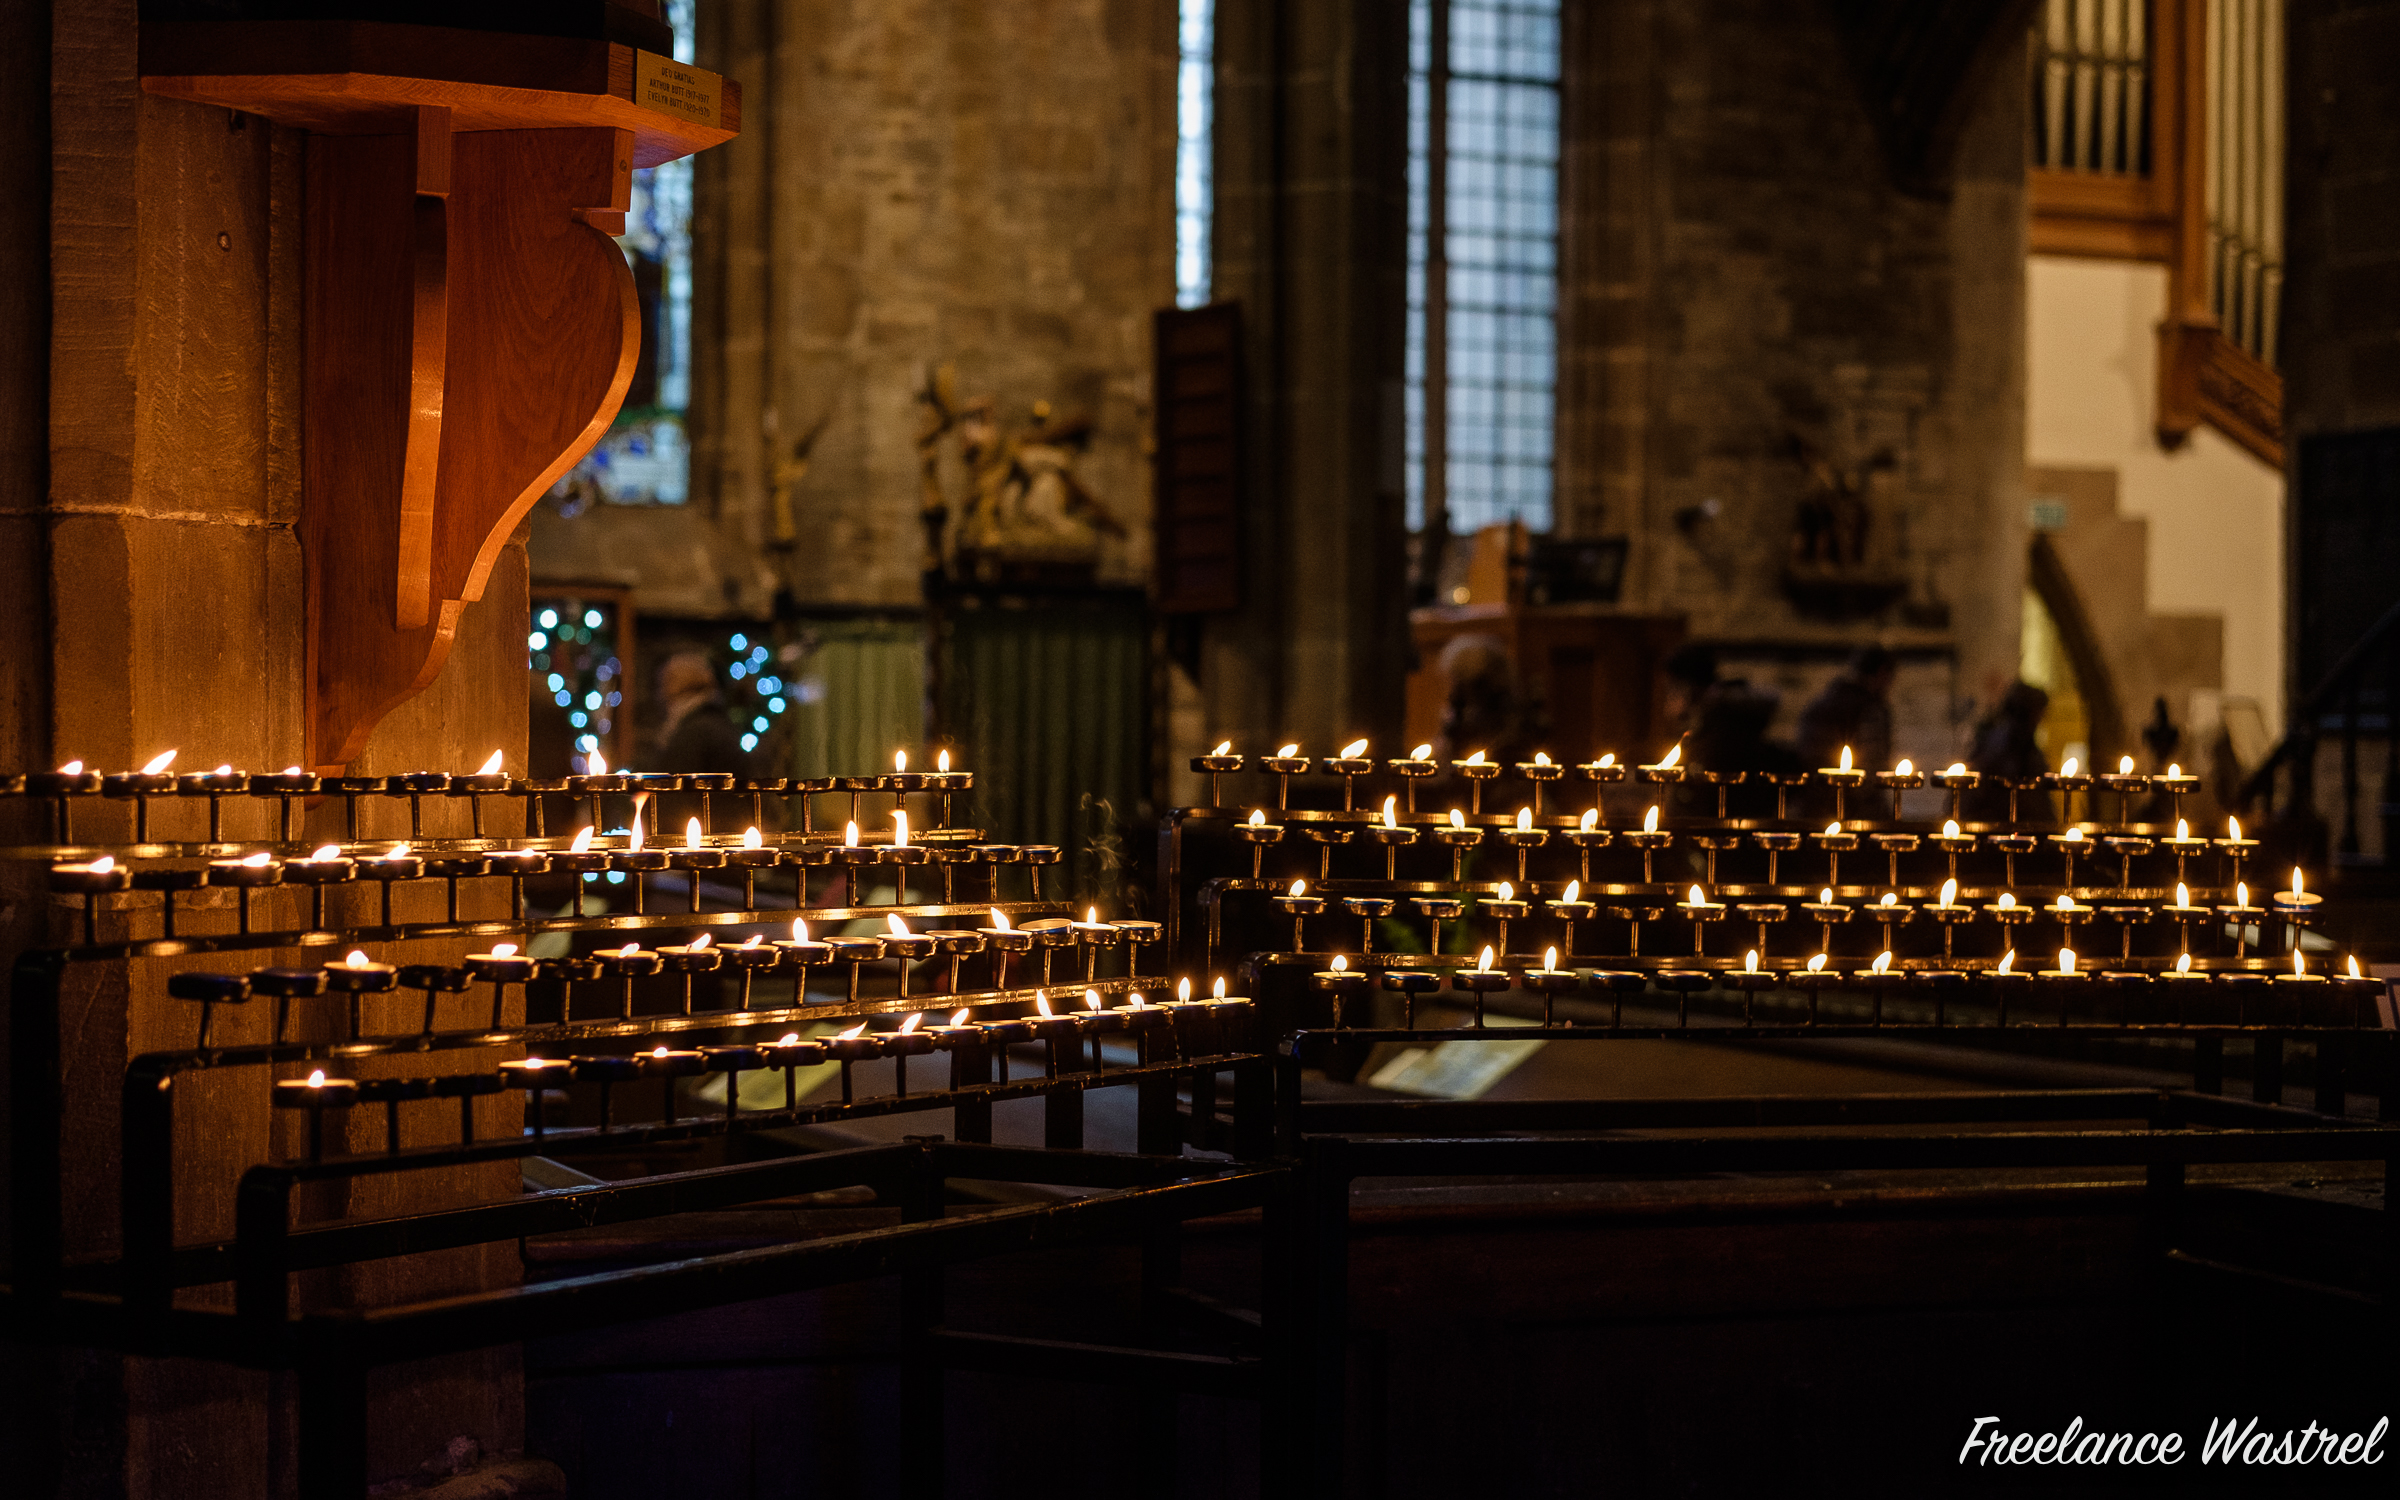 Candles, The Parish Church of St. Mary and All Saints, Chesterfield